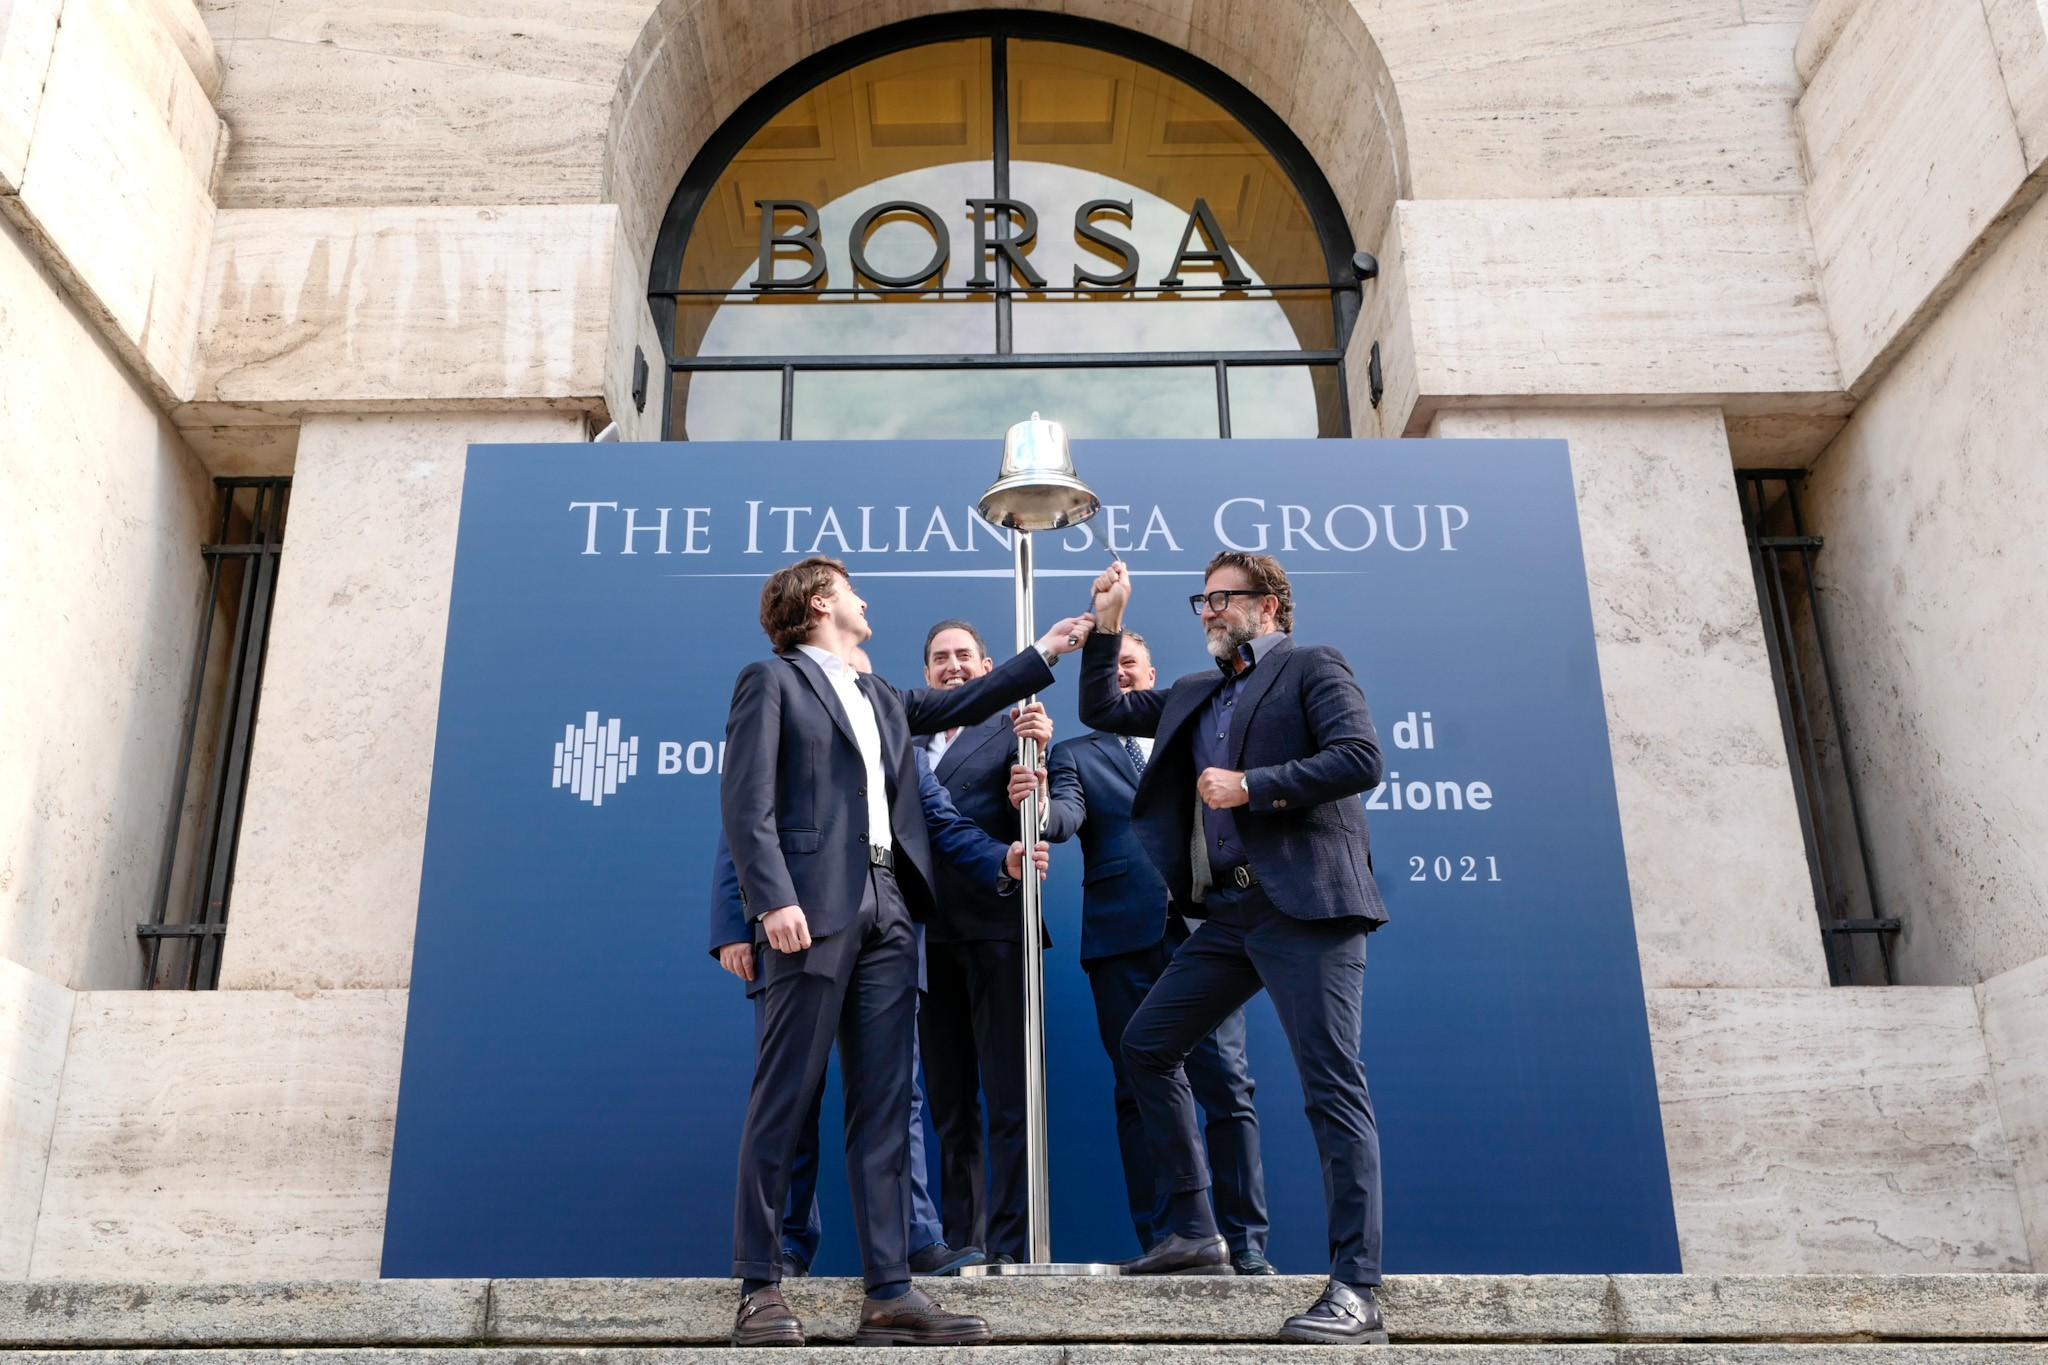 sea italian group ring the bell